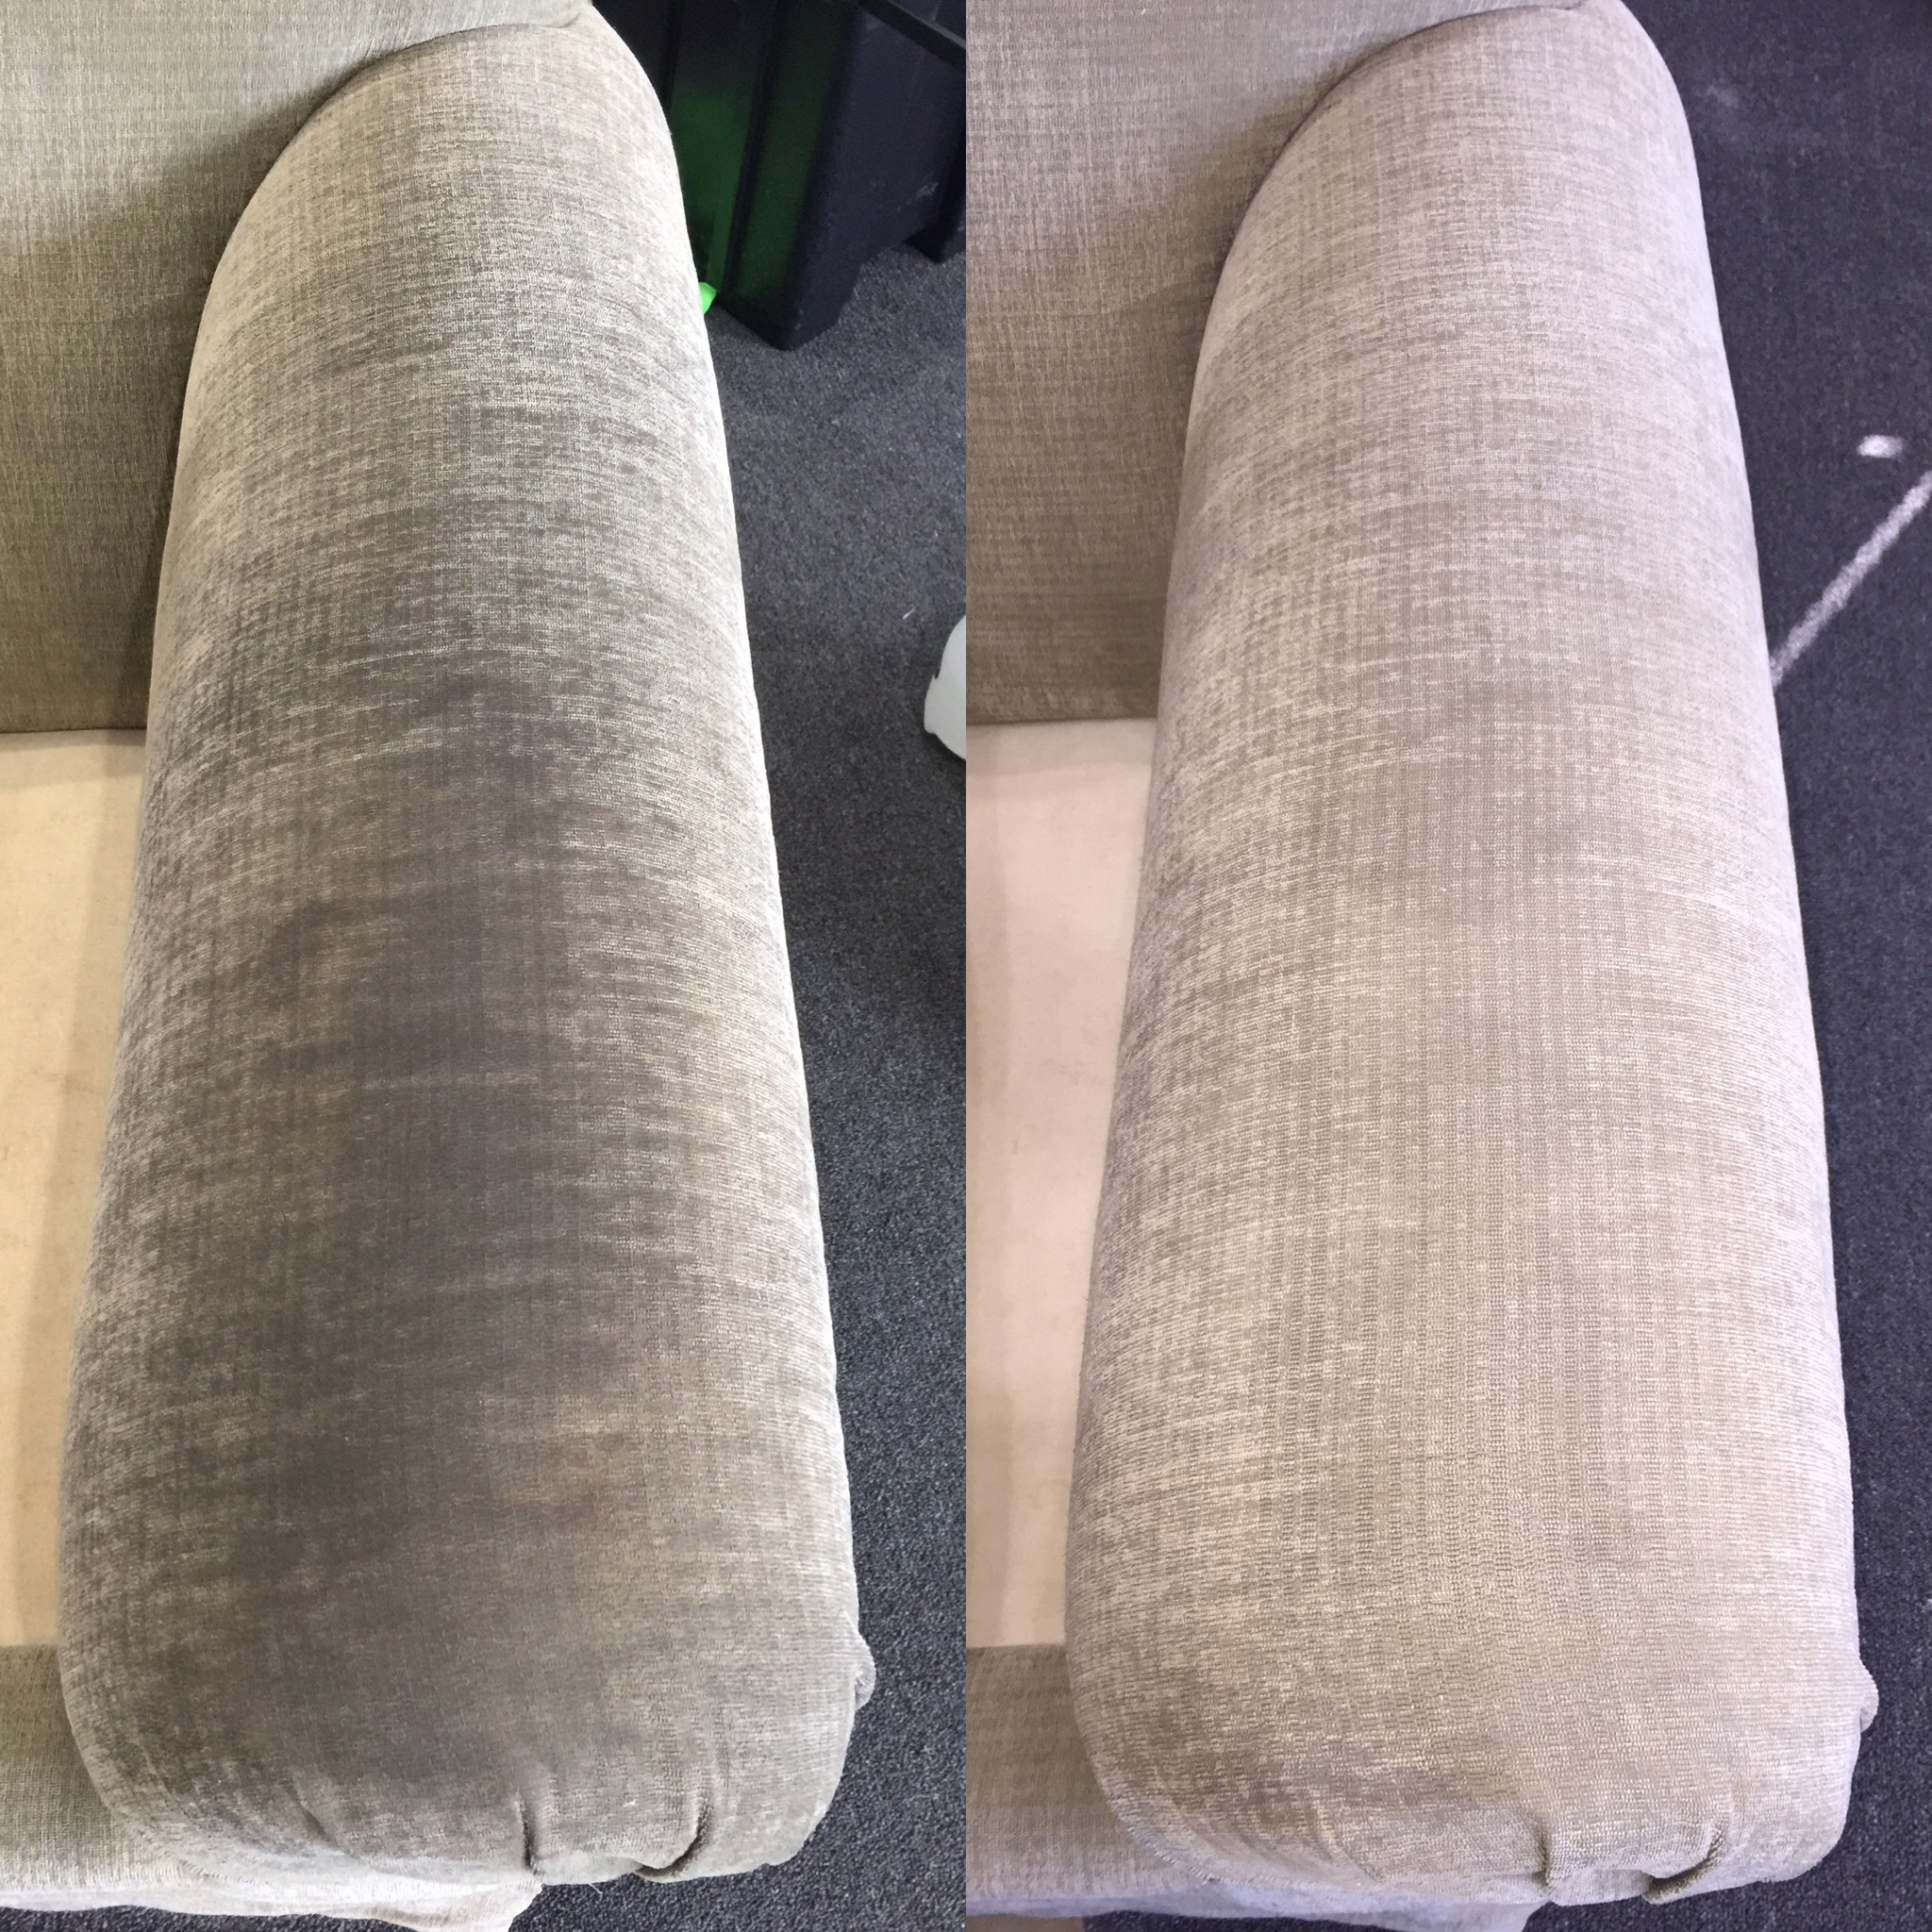 Restoration of upholstery's original look and feel.